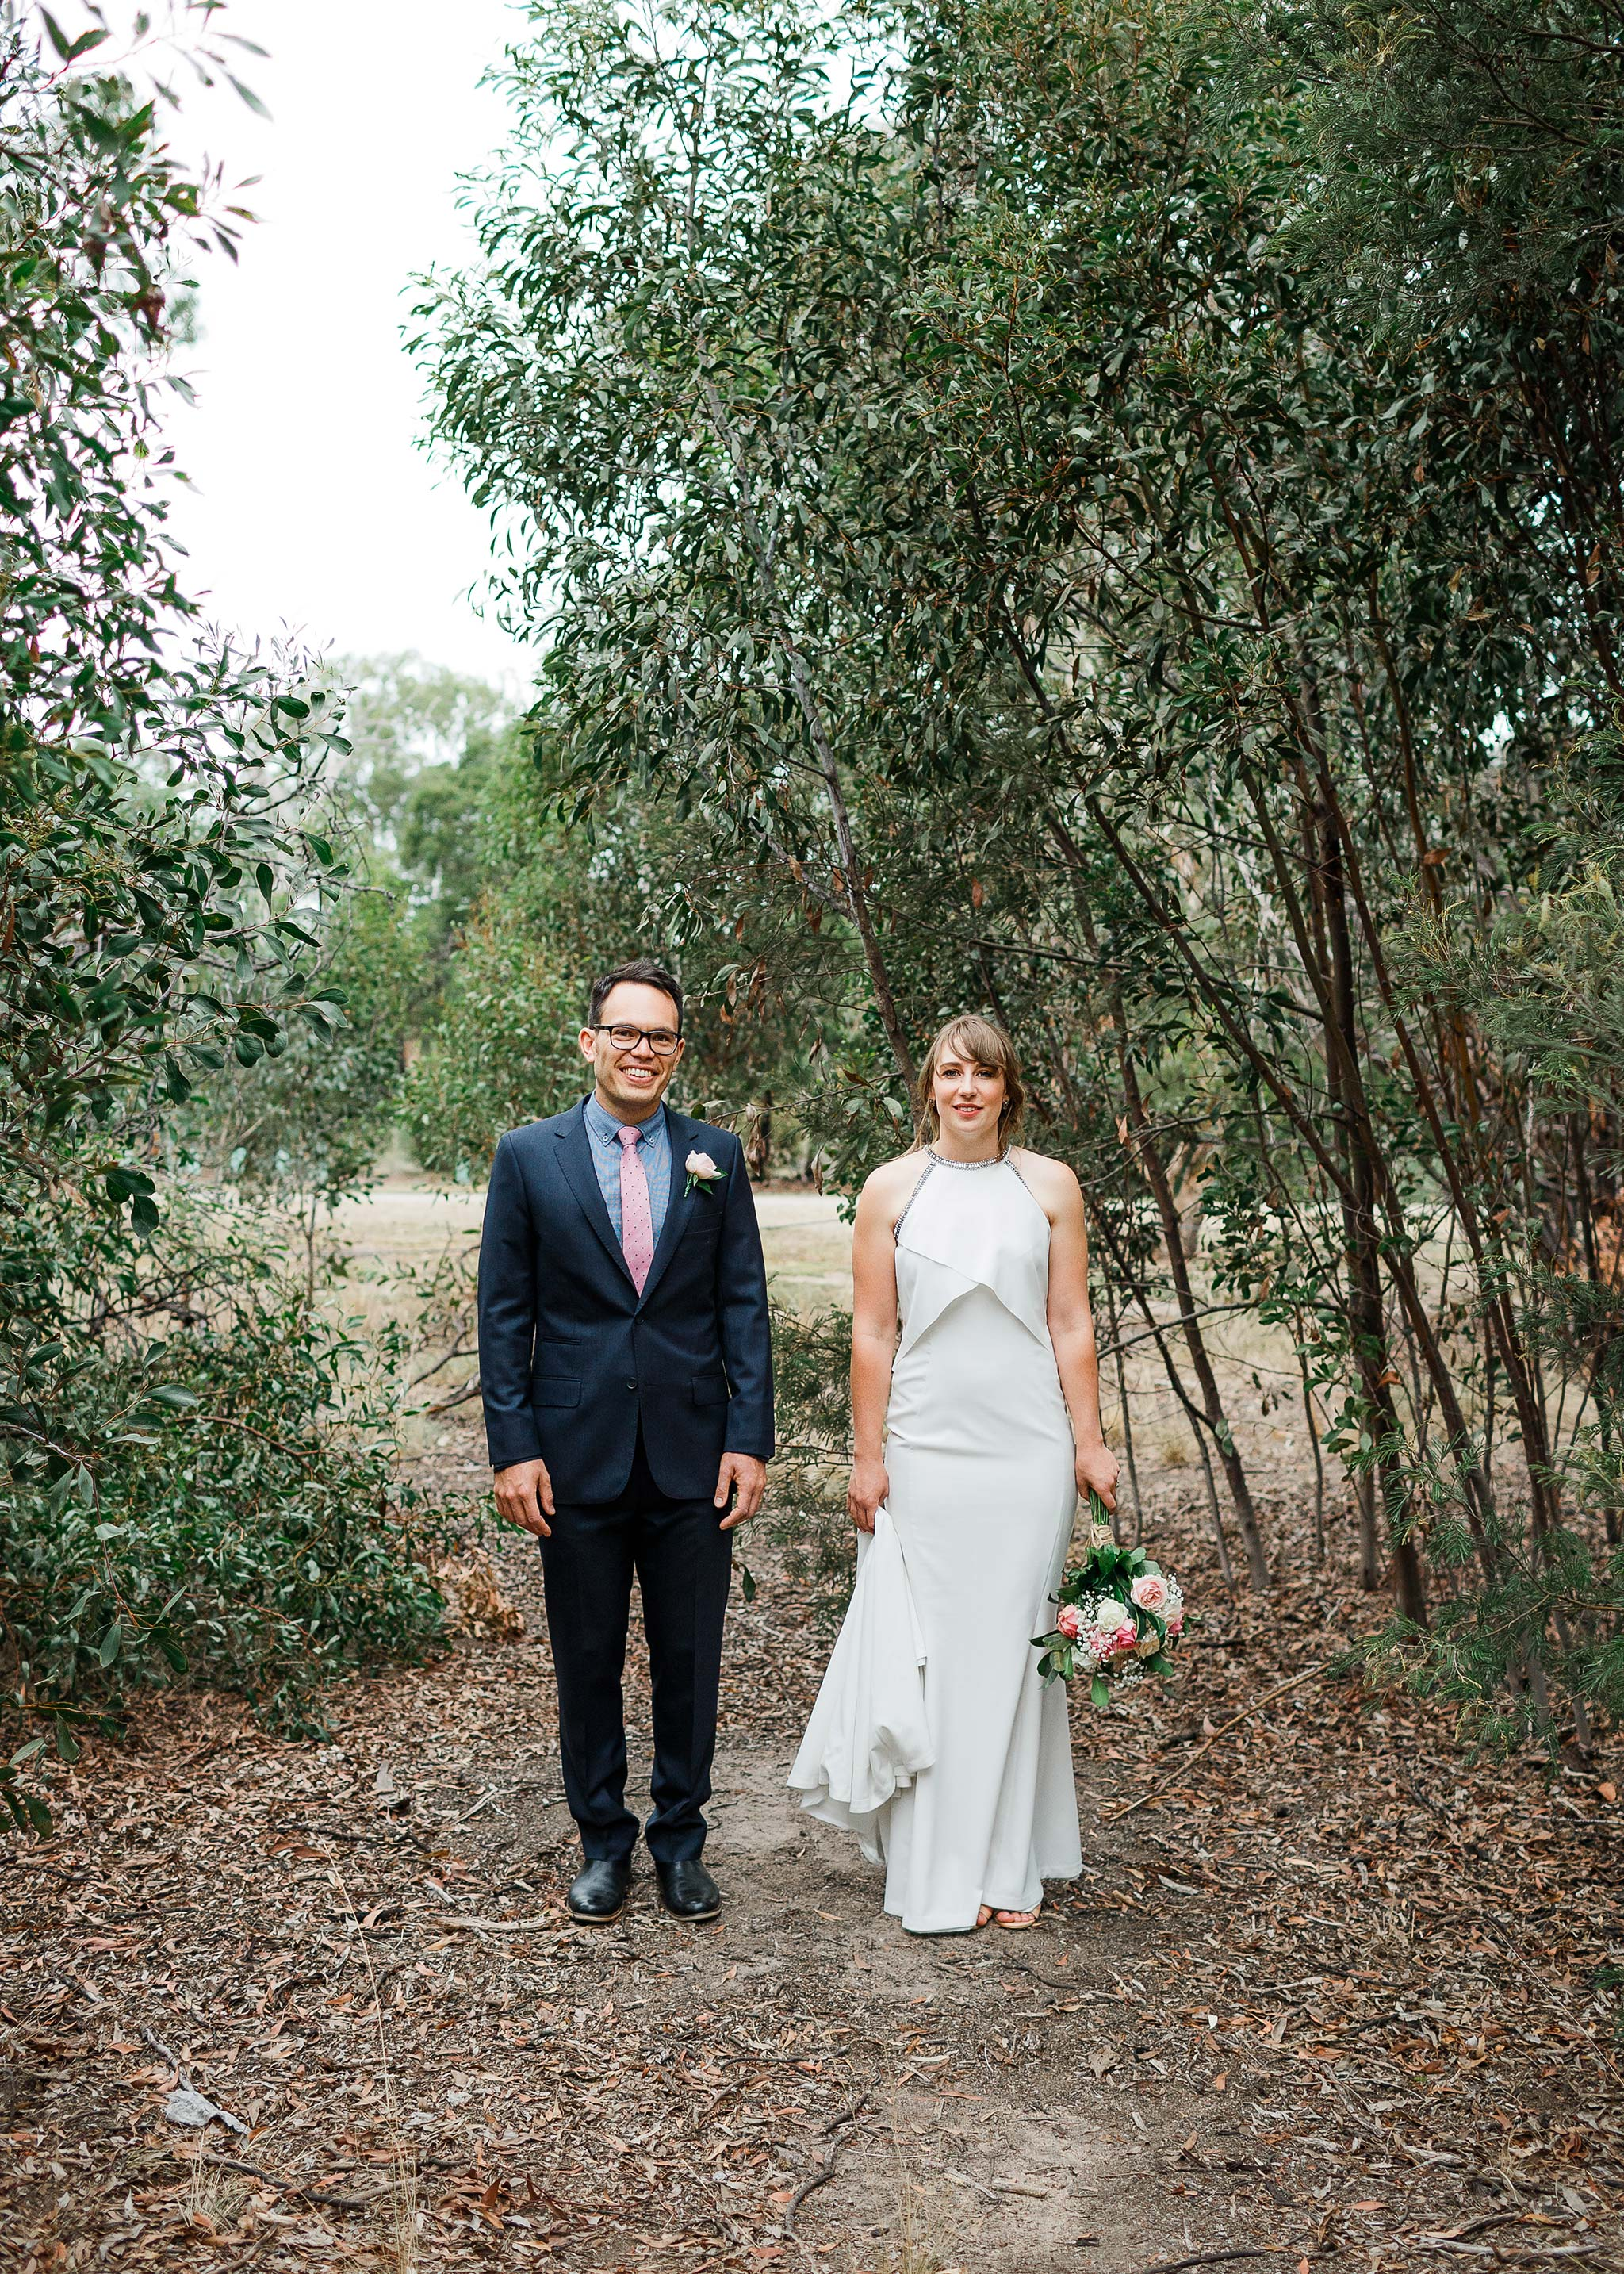 Strathmore-Melbourne-Backyard-Wedding-napier-park-bride-groom-portrait